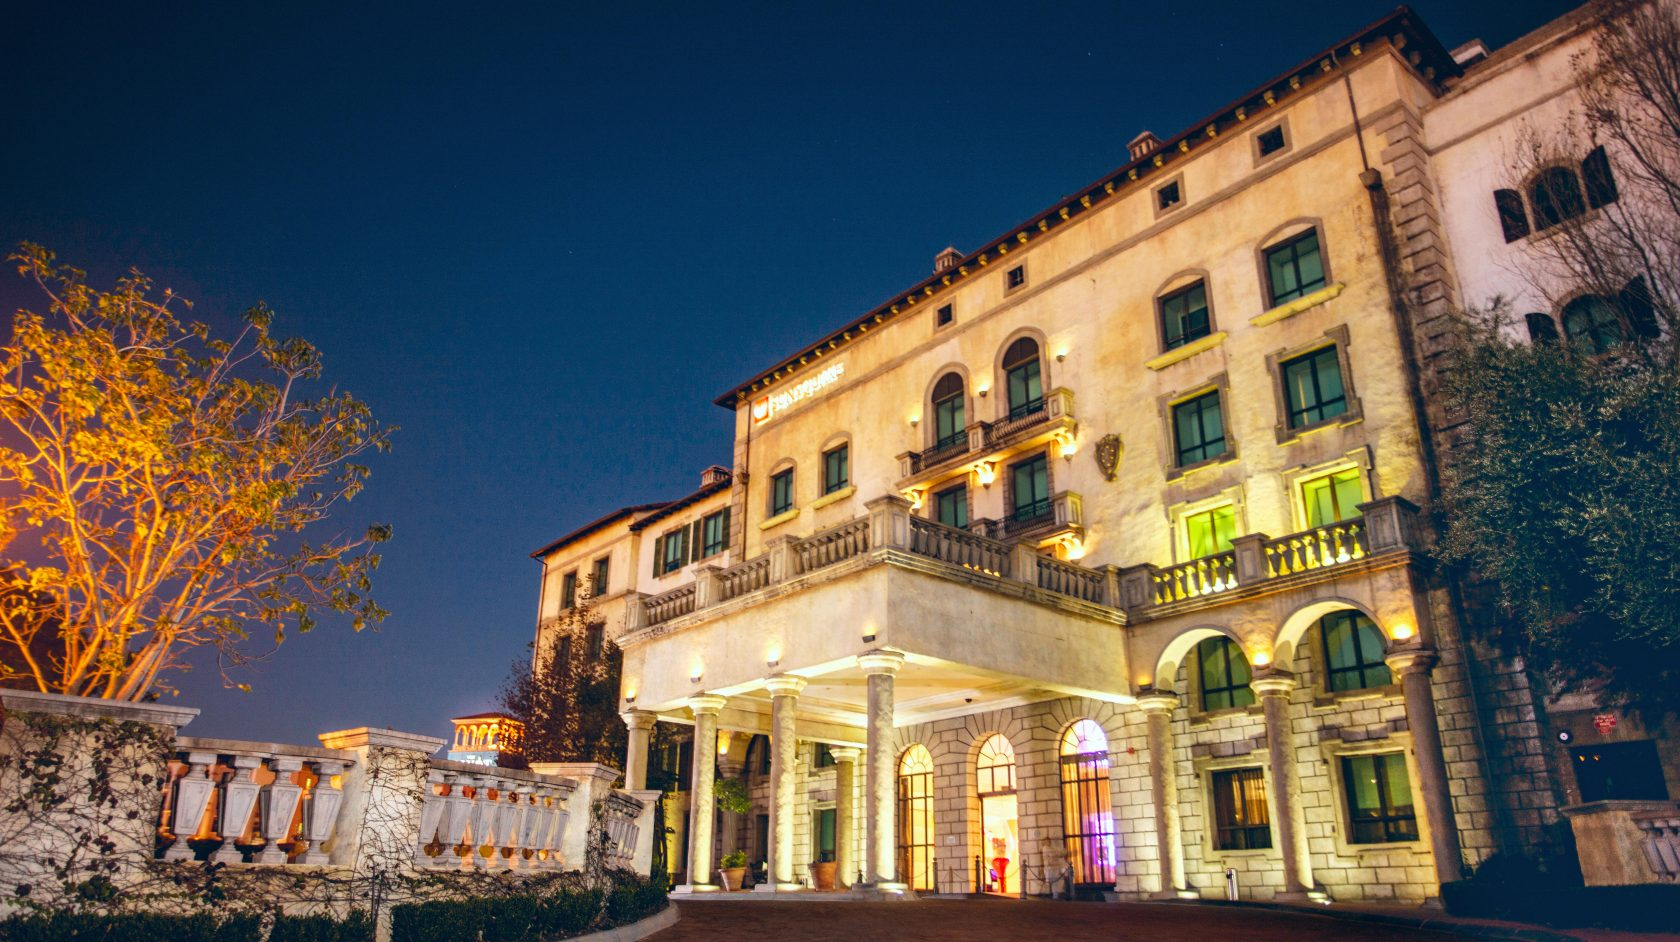 SunSquare Montecasino Hotel exterior and entrance